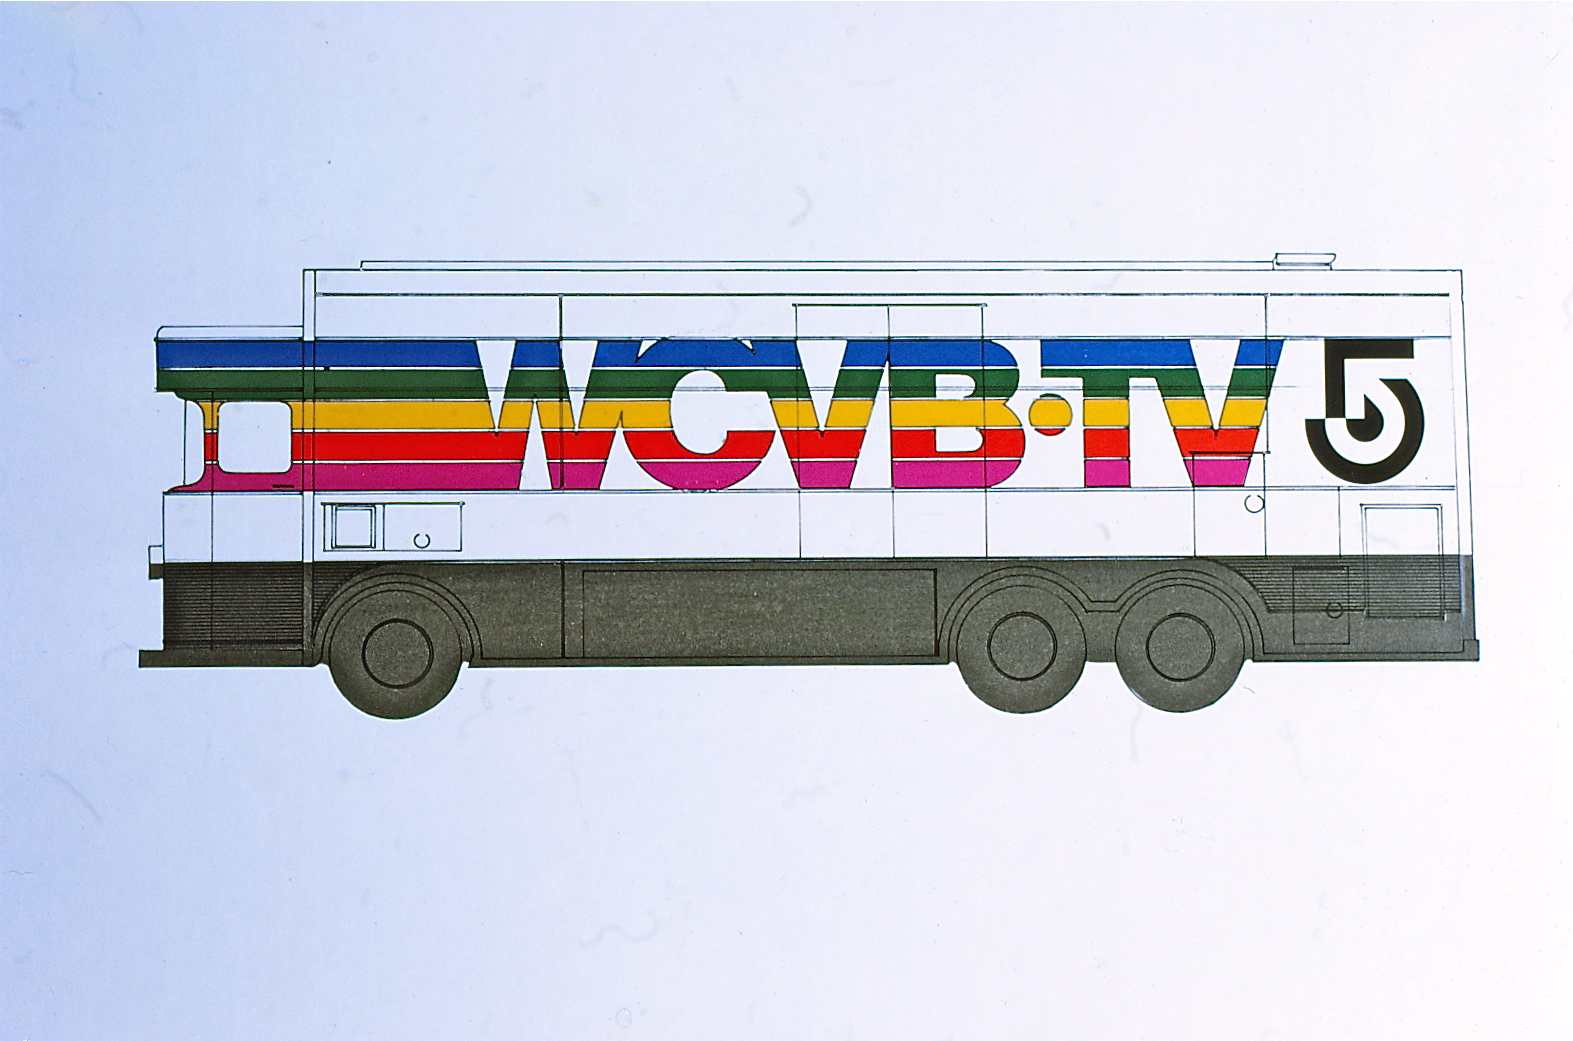 Drawing of truck with logo